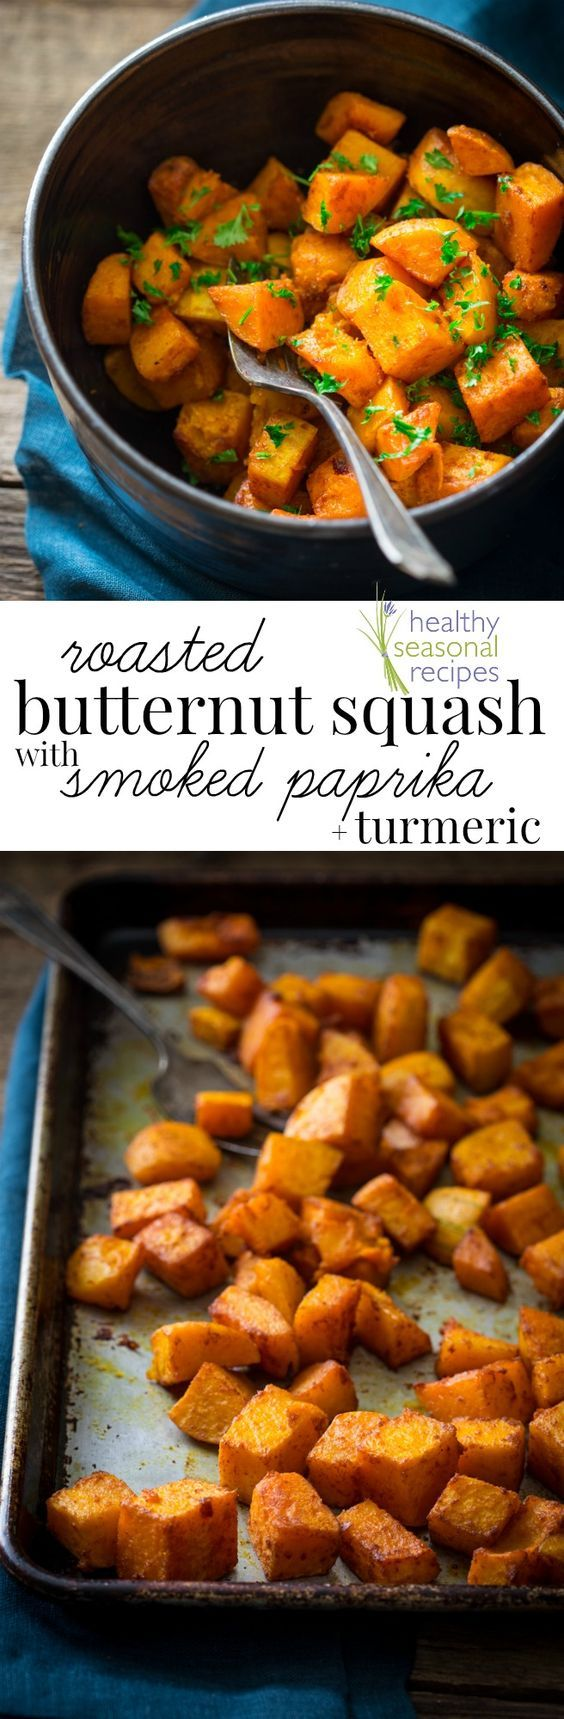 Best 25 gout recipes ideas on pinterest easy healthy for Side dishes to go with smoked chicken